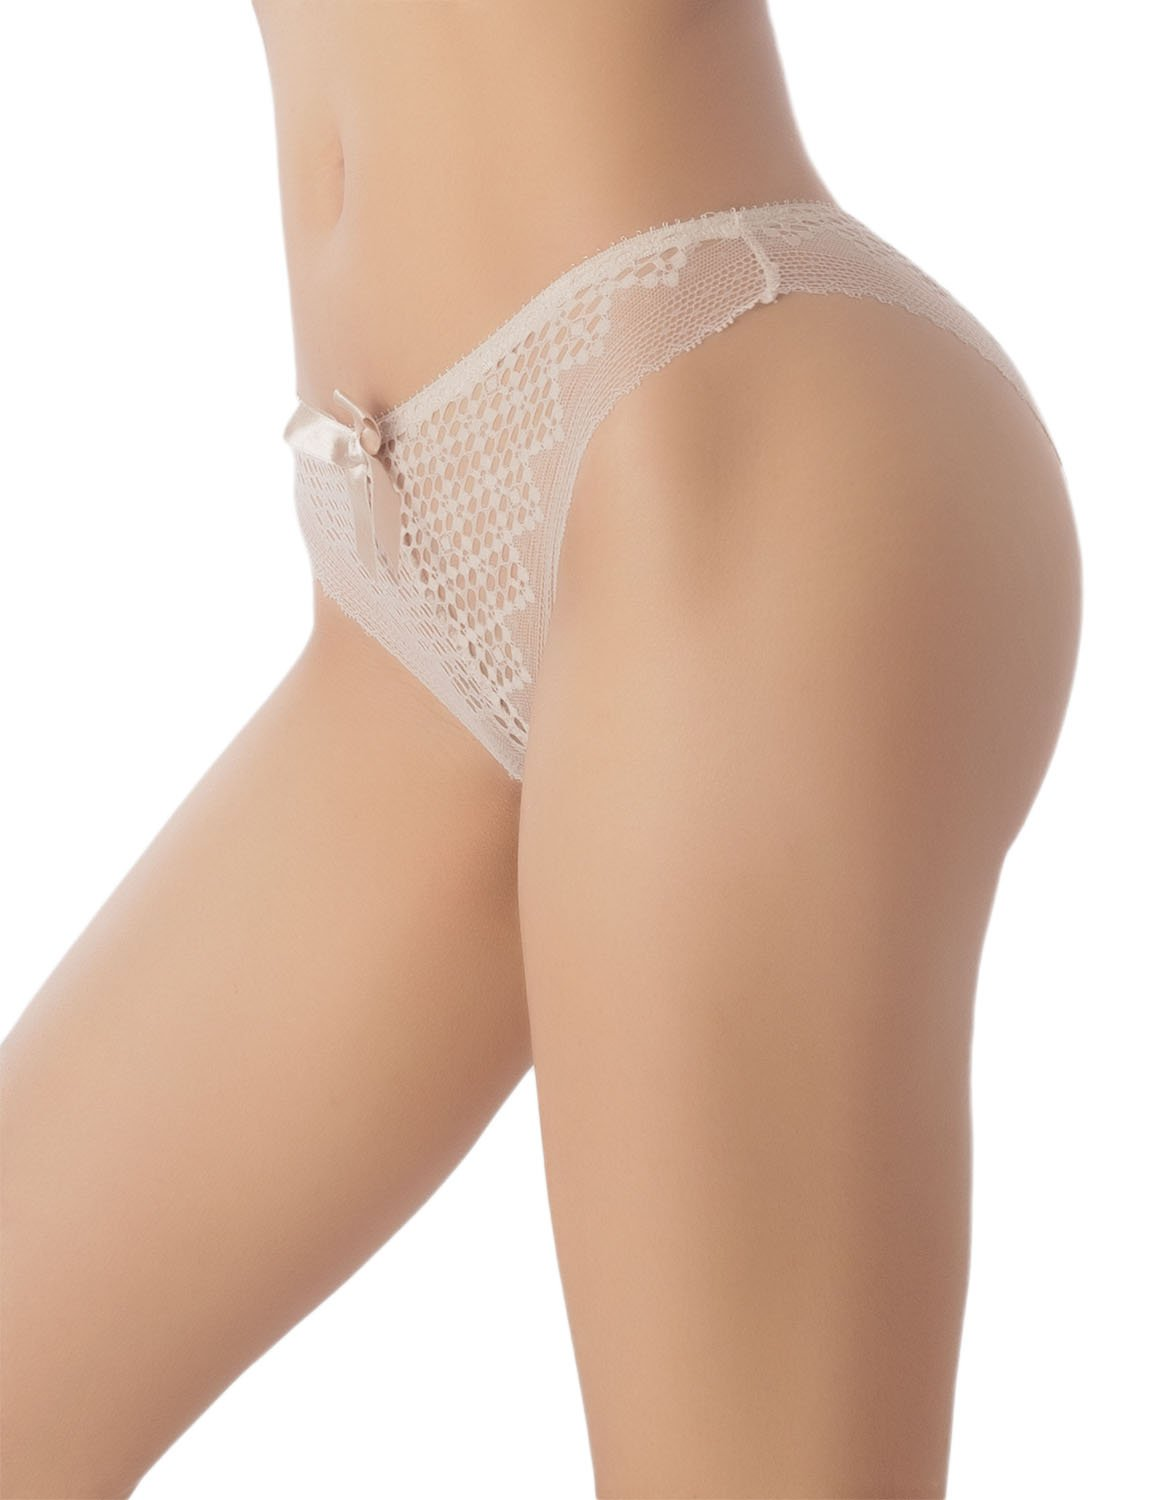 Women's See-Through Sheer Sexy Laces Cotton Comfort Low Rise Brief Panty, Size: L, Off White